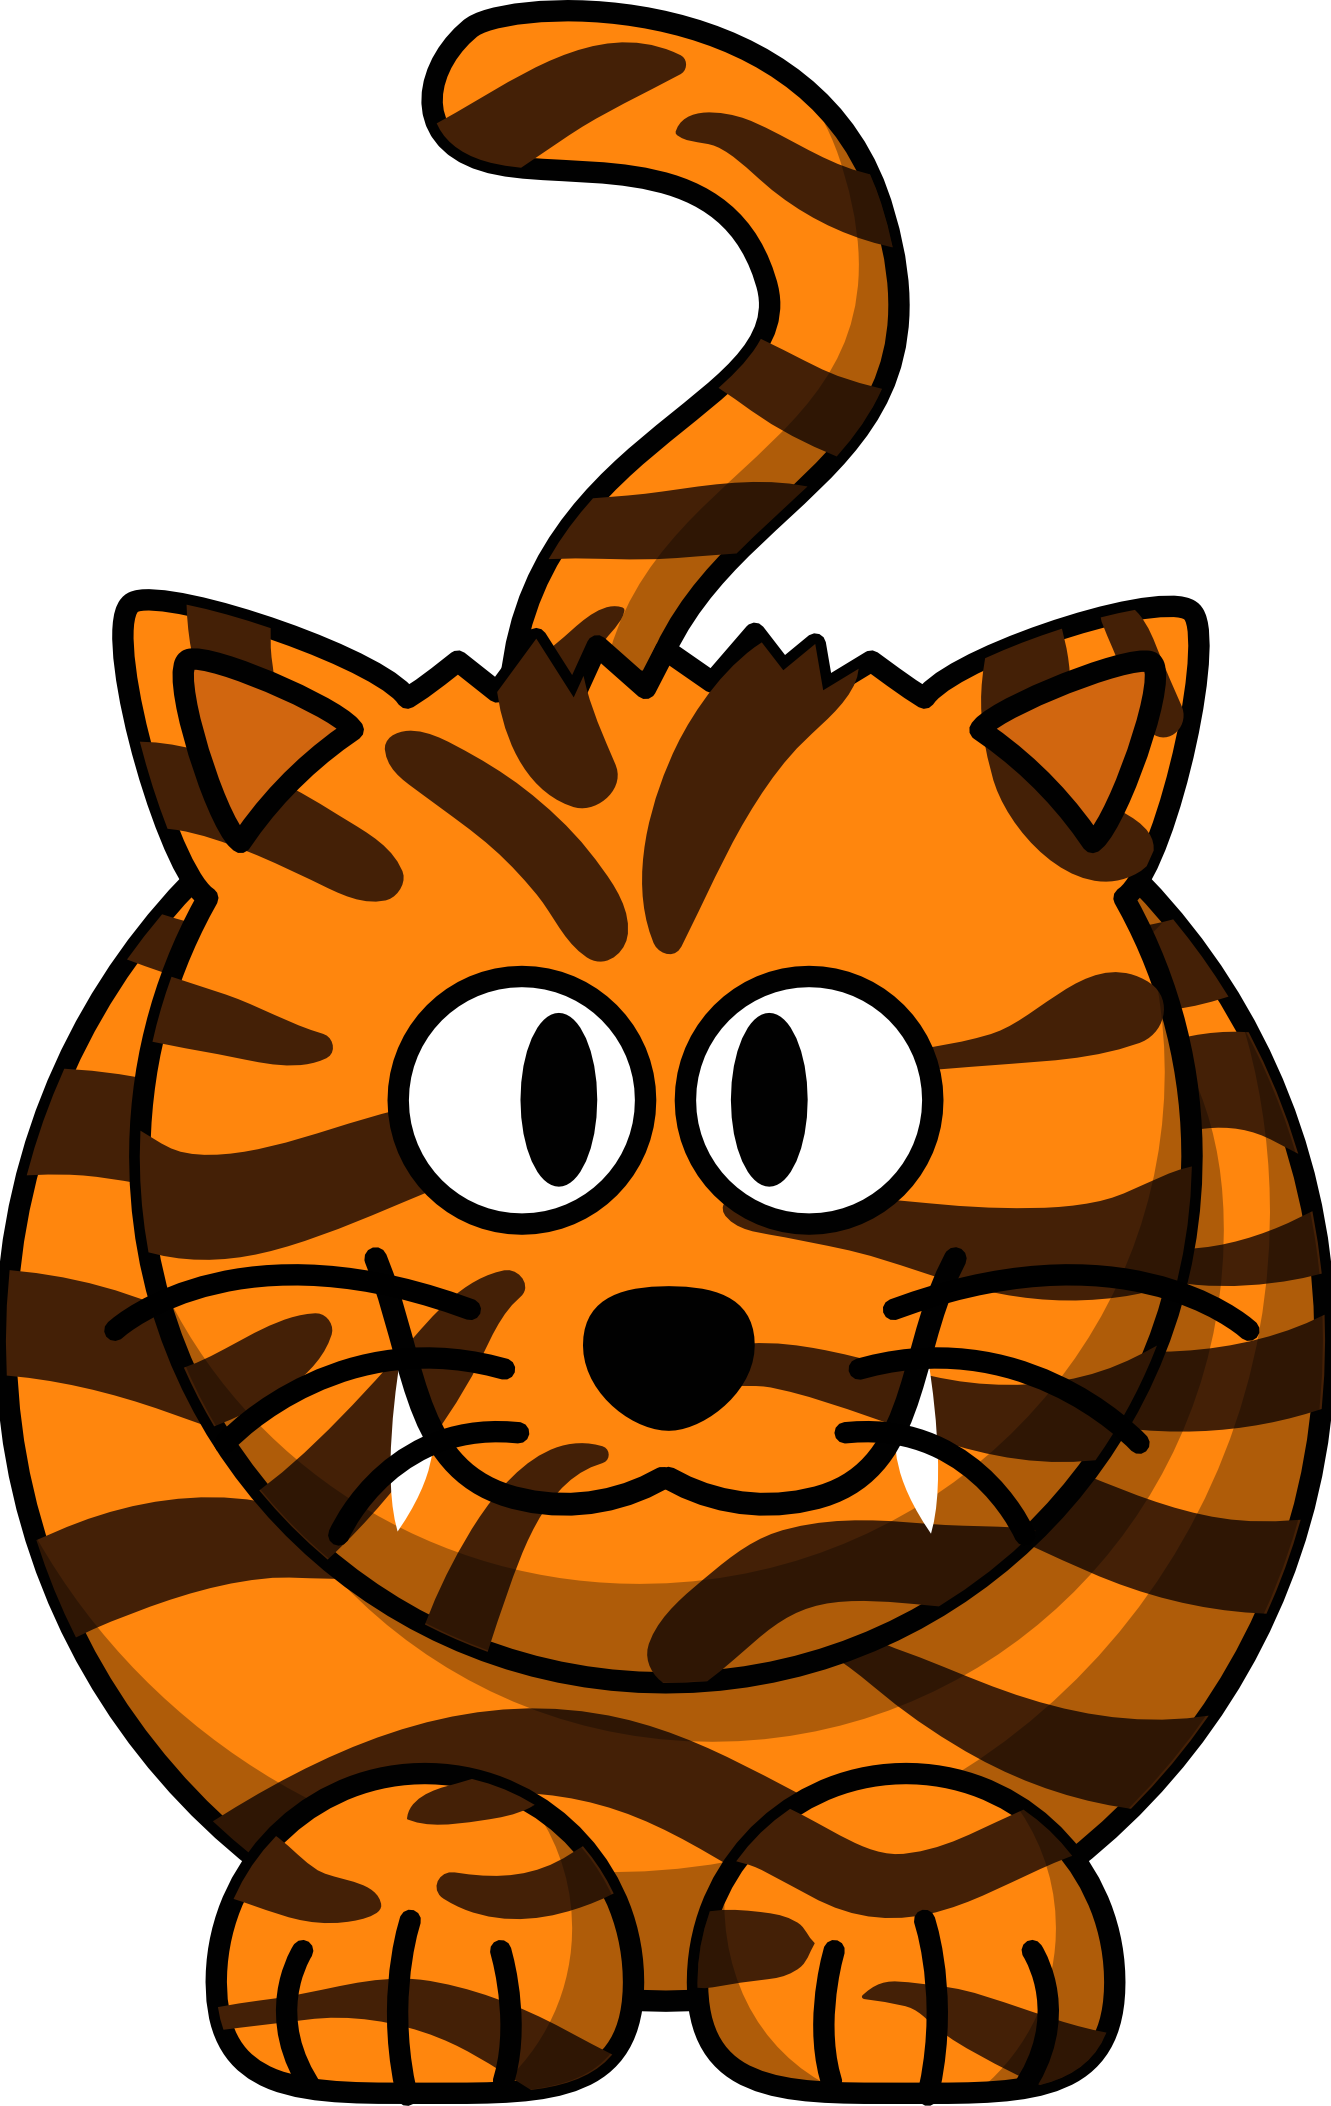 Tiger face clip art. Yearbook clipart animated